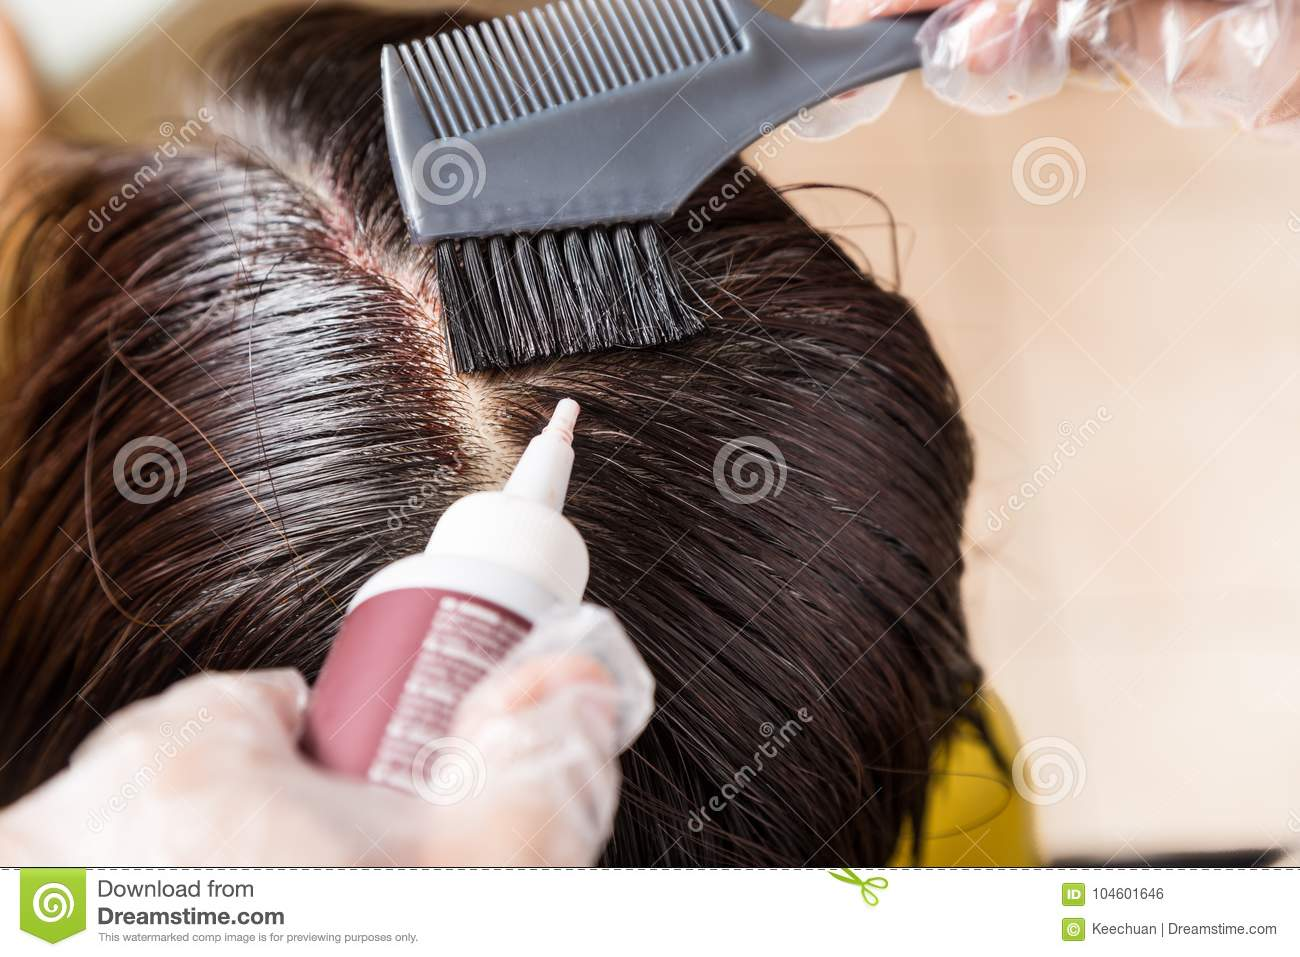 Hair Dresser Applying Chemical Hair Color Dye Onto Hair Roots Stock